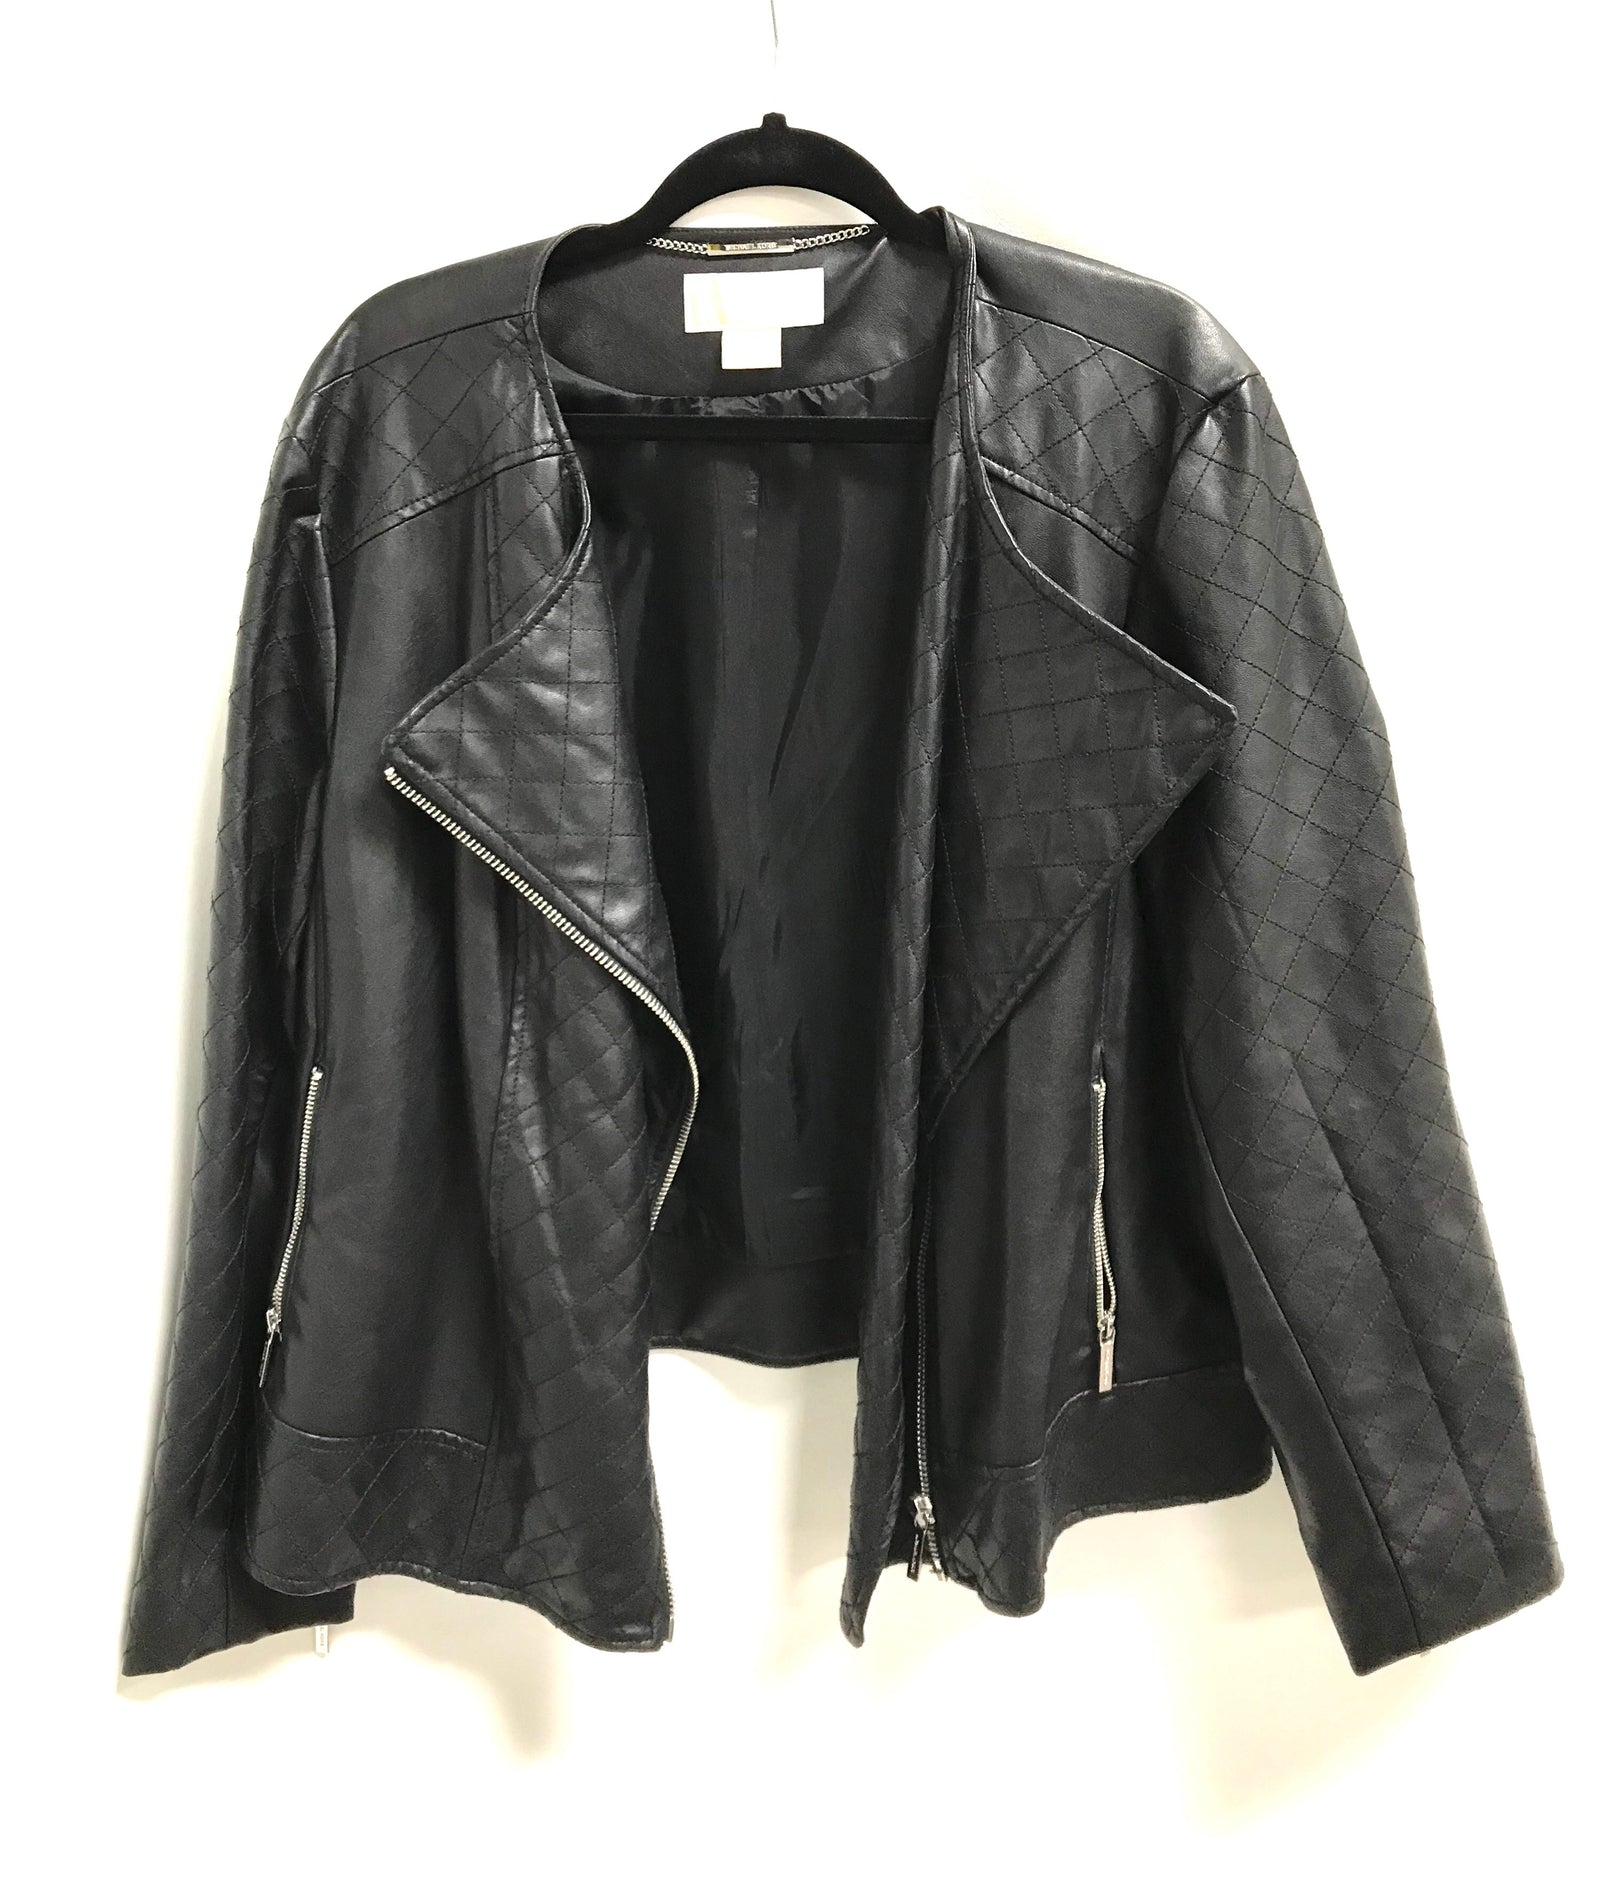 Michael Kors Jacket (3X, Fits 2X)